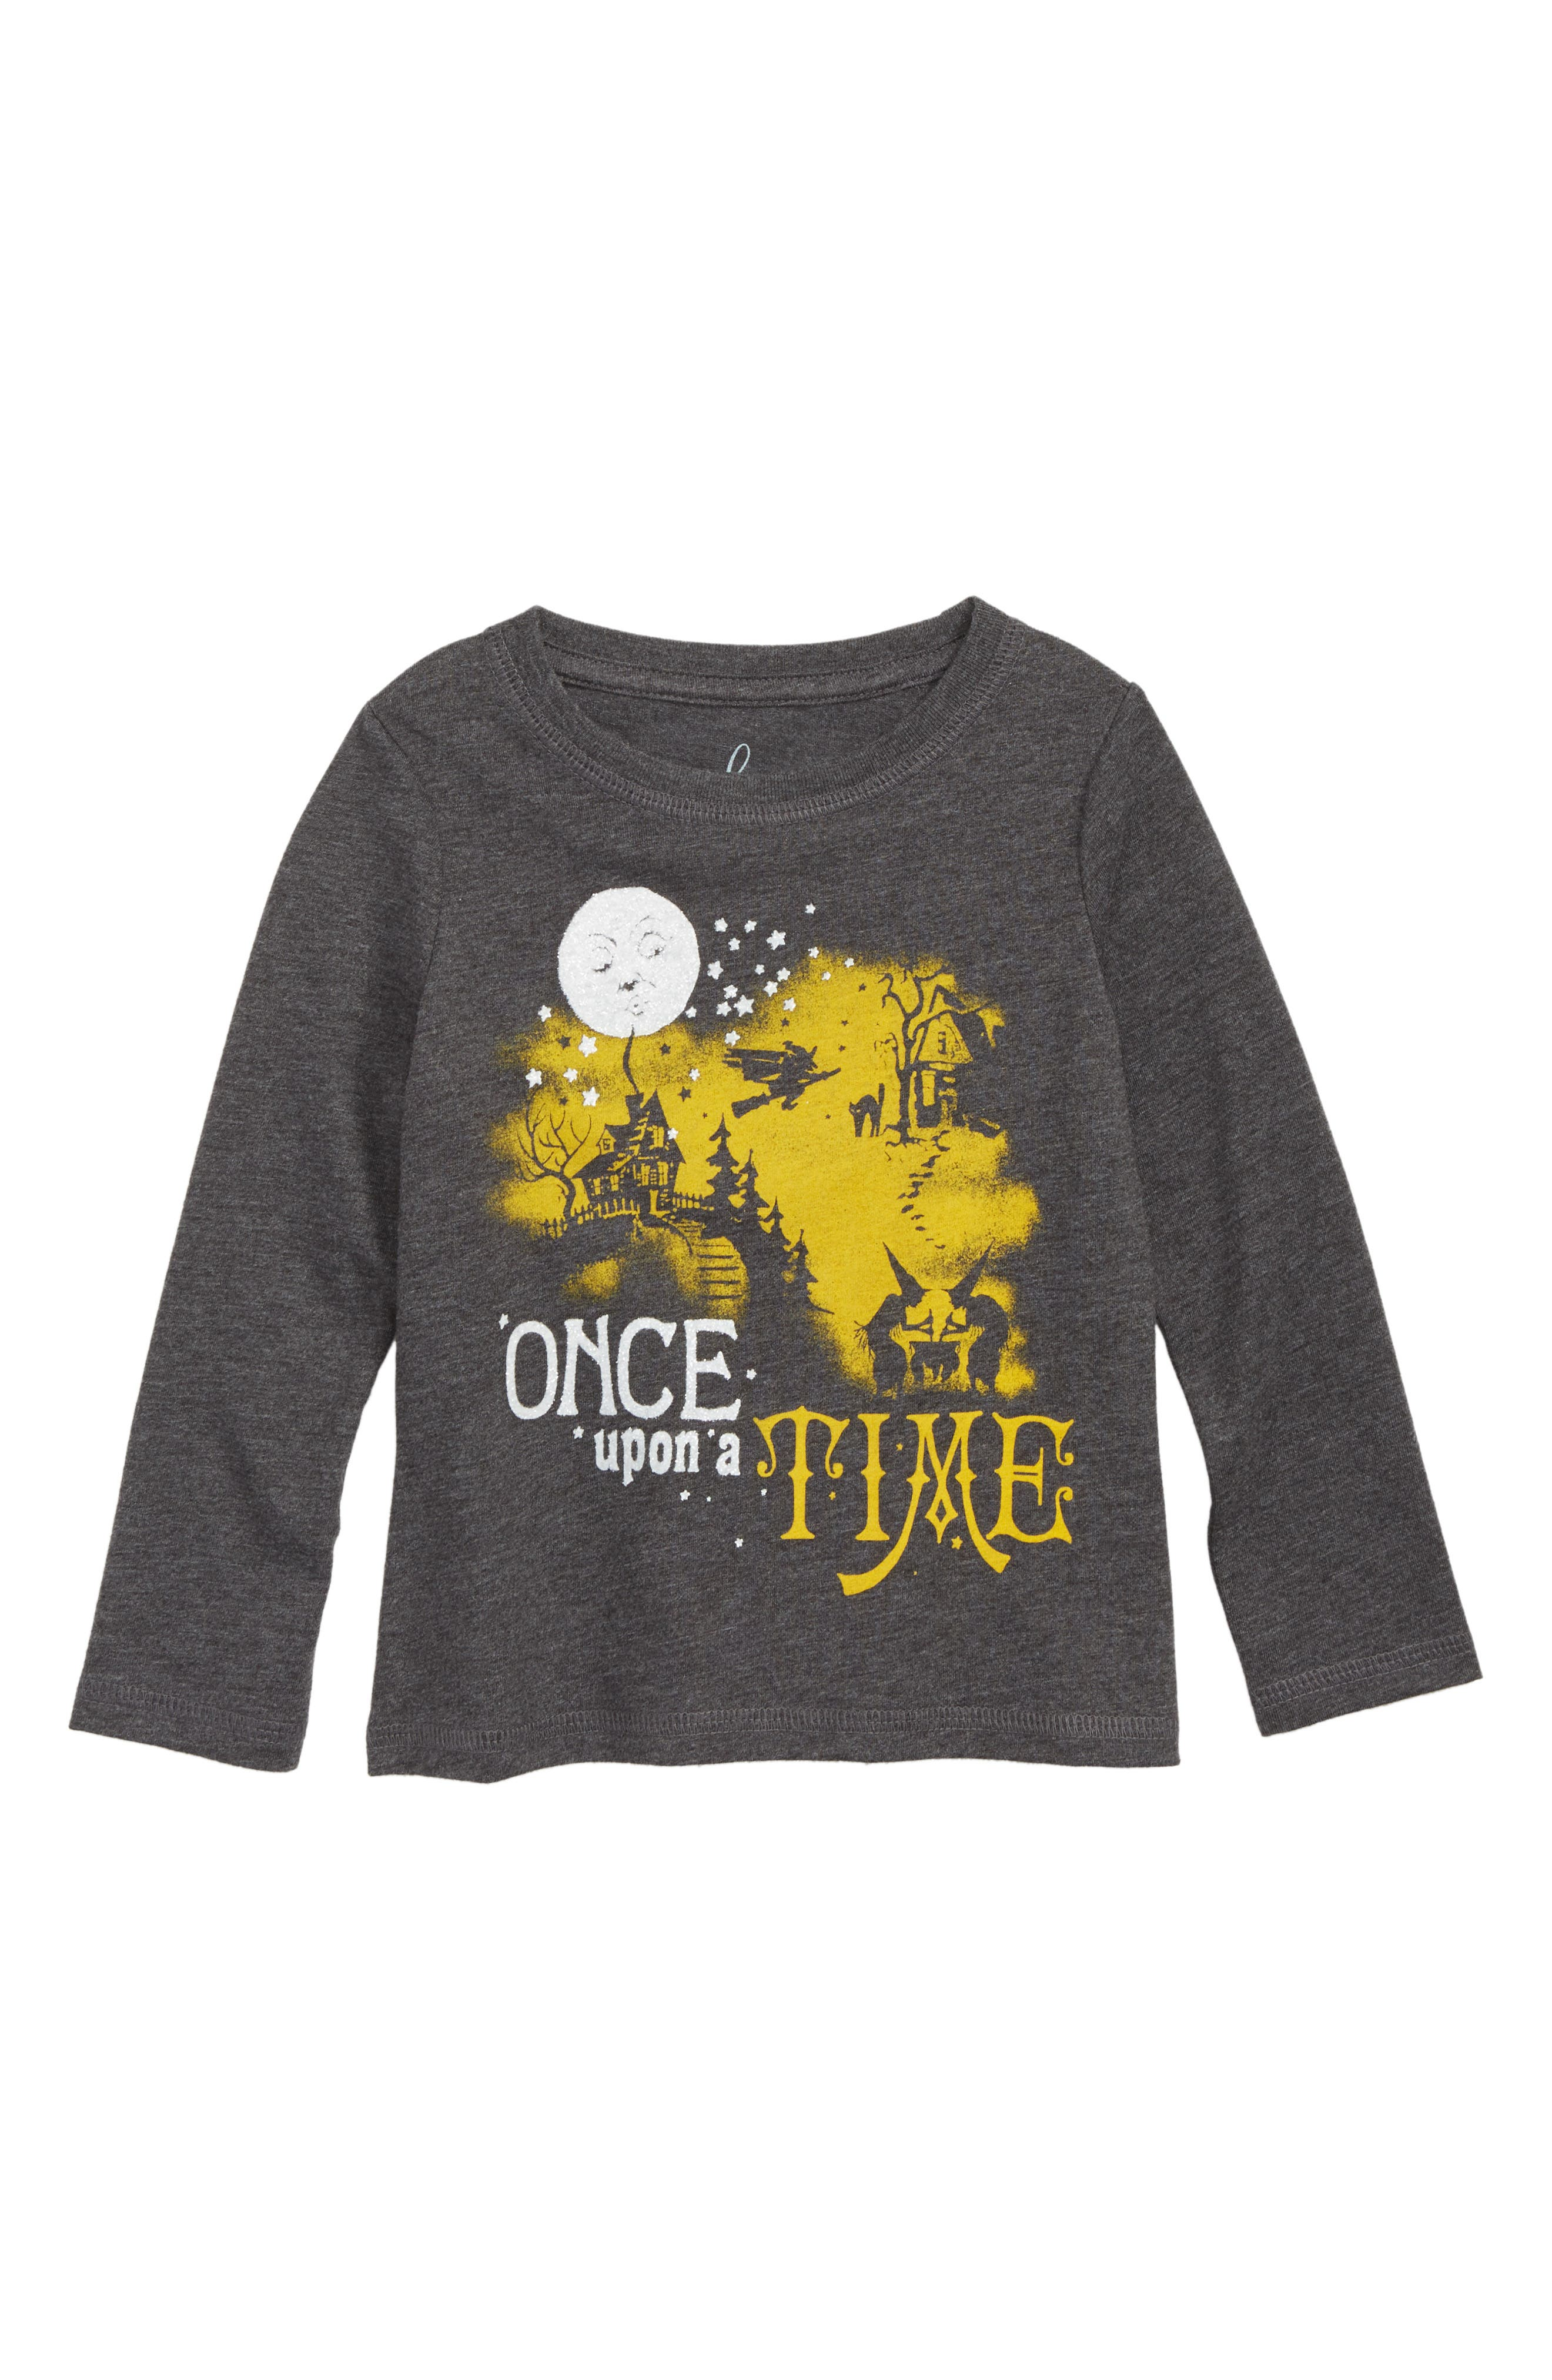 Once Upon a Time Graphic Tee,                         Main,                         color, BLACK